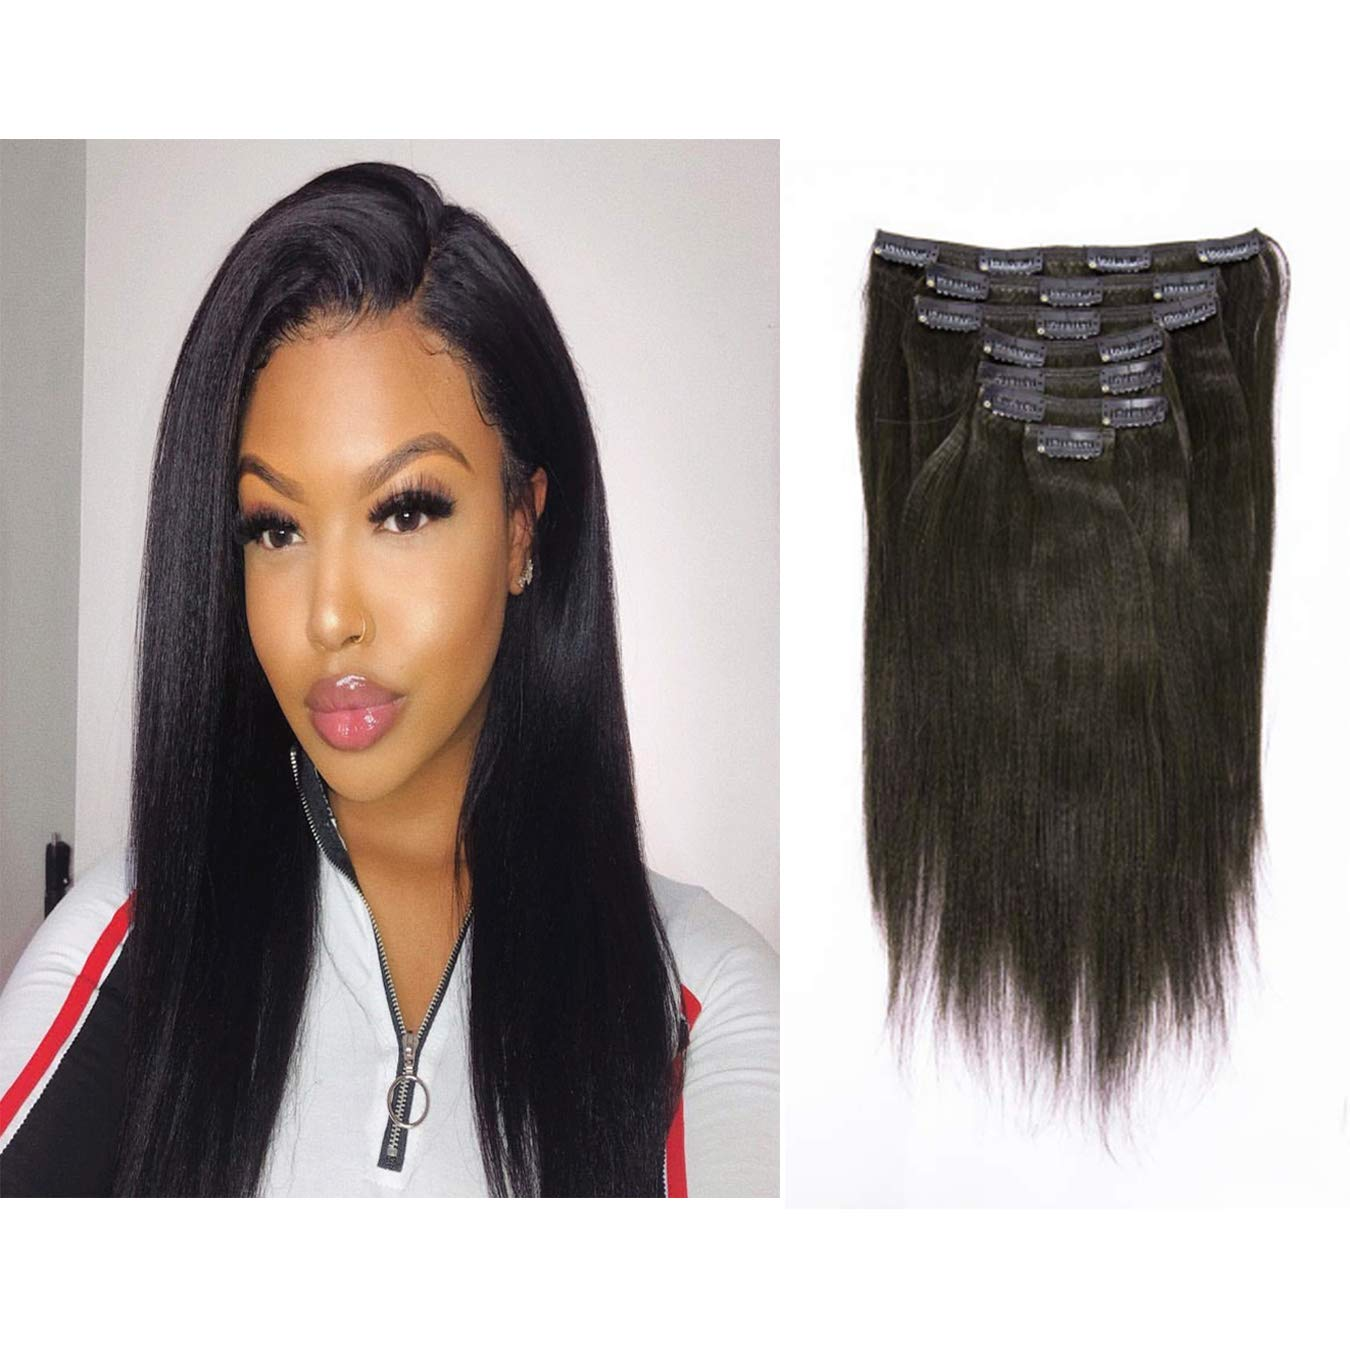 Italian Yaki Straight Hair Clip In Hair Extensions 100% Real Remy Human Hair 8A Grade Thick Virgin Hair Clip Ins 4C African Americans Full Head Natural Color For Black Women 7pcs/set 120g/set 10 Inch by Loxxy